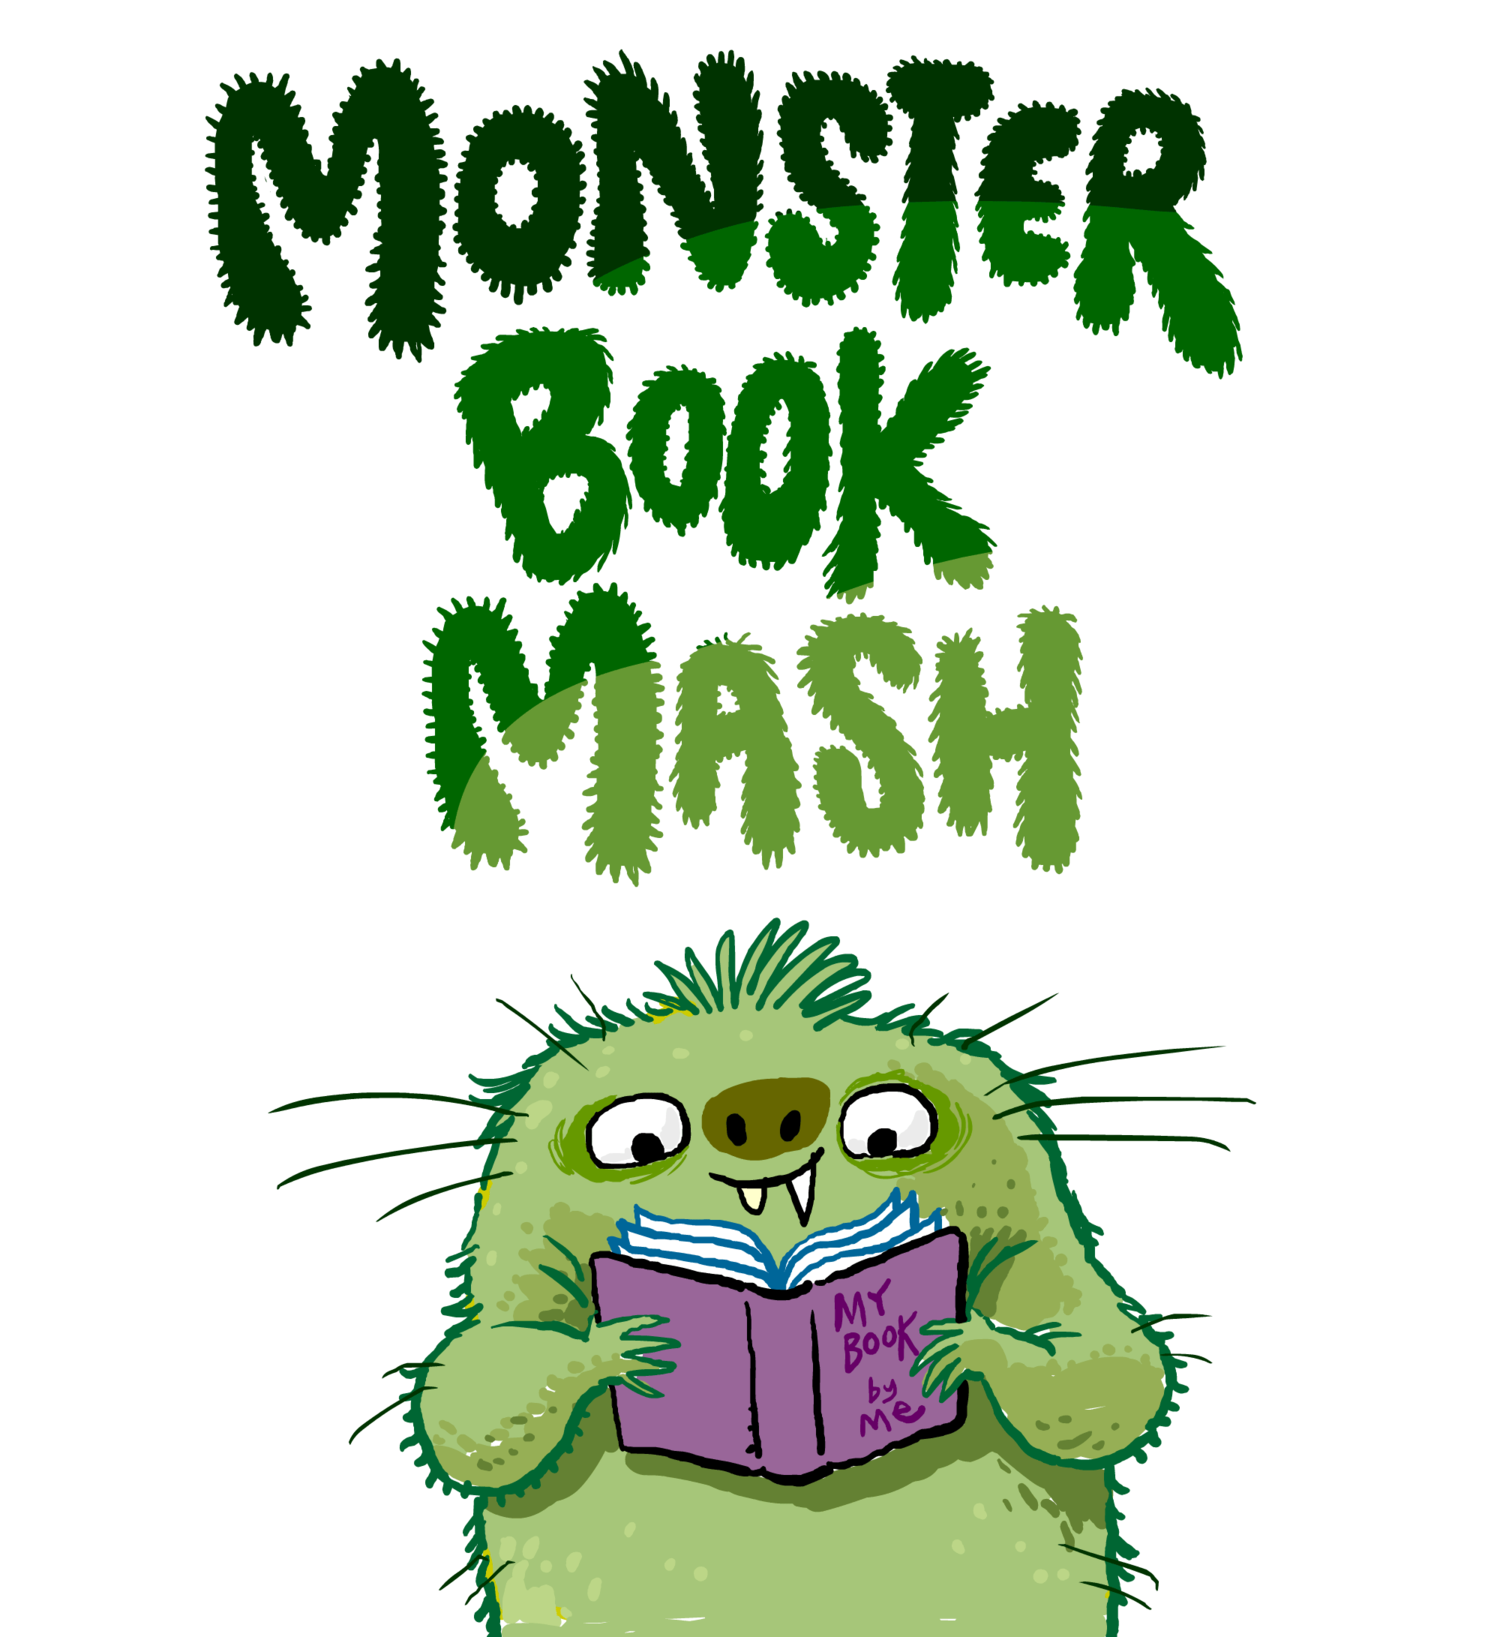 Program Monster Book Mash